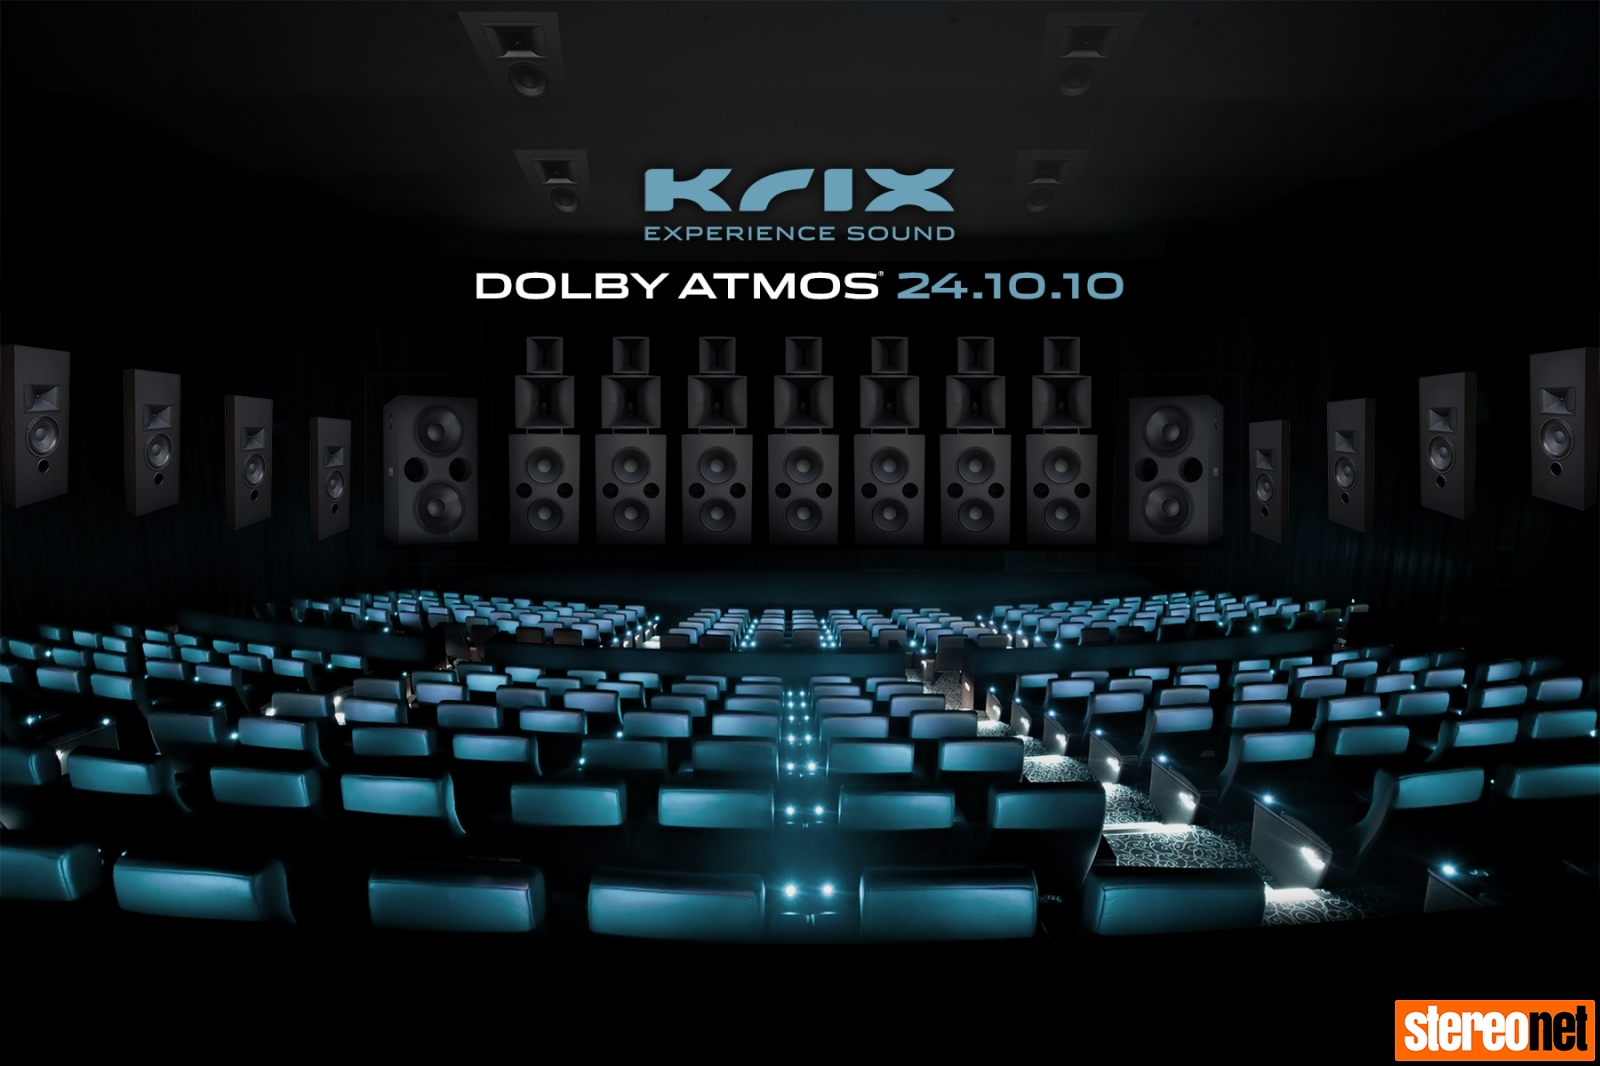 Krix Dolby Atmos 24.10.10 Demonstration Melbourne Hi-Fi Show